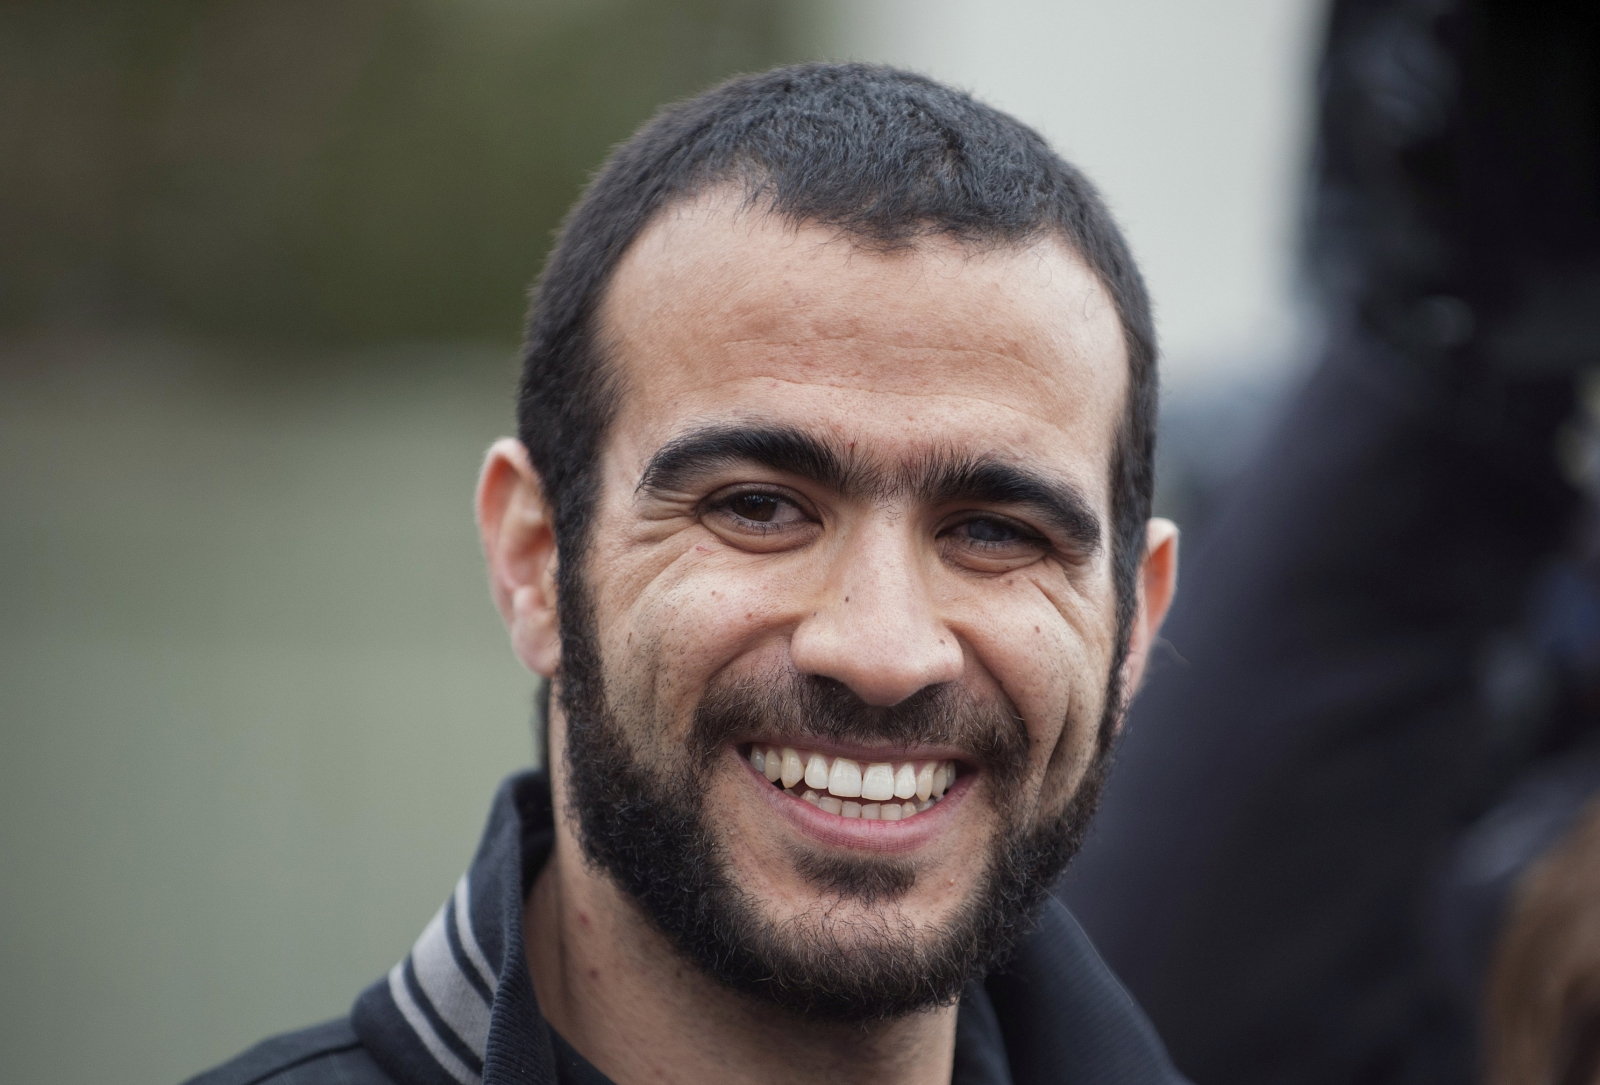 Canada's C$10.5M Payout To Ex-Guantanamo Inmate Omar Khadr Causes Controversy